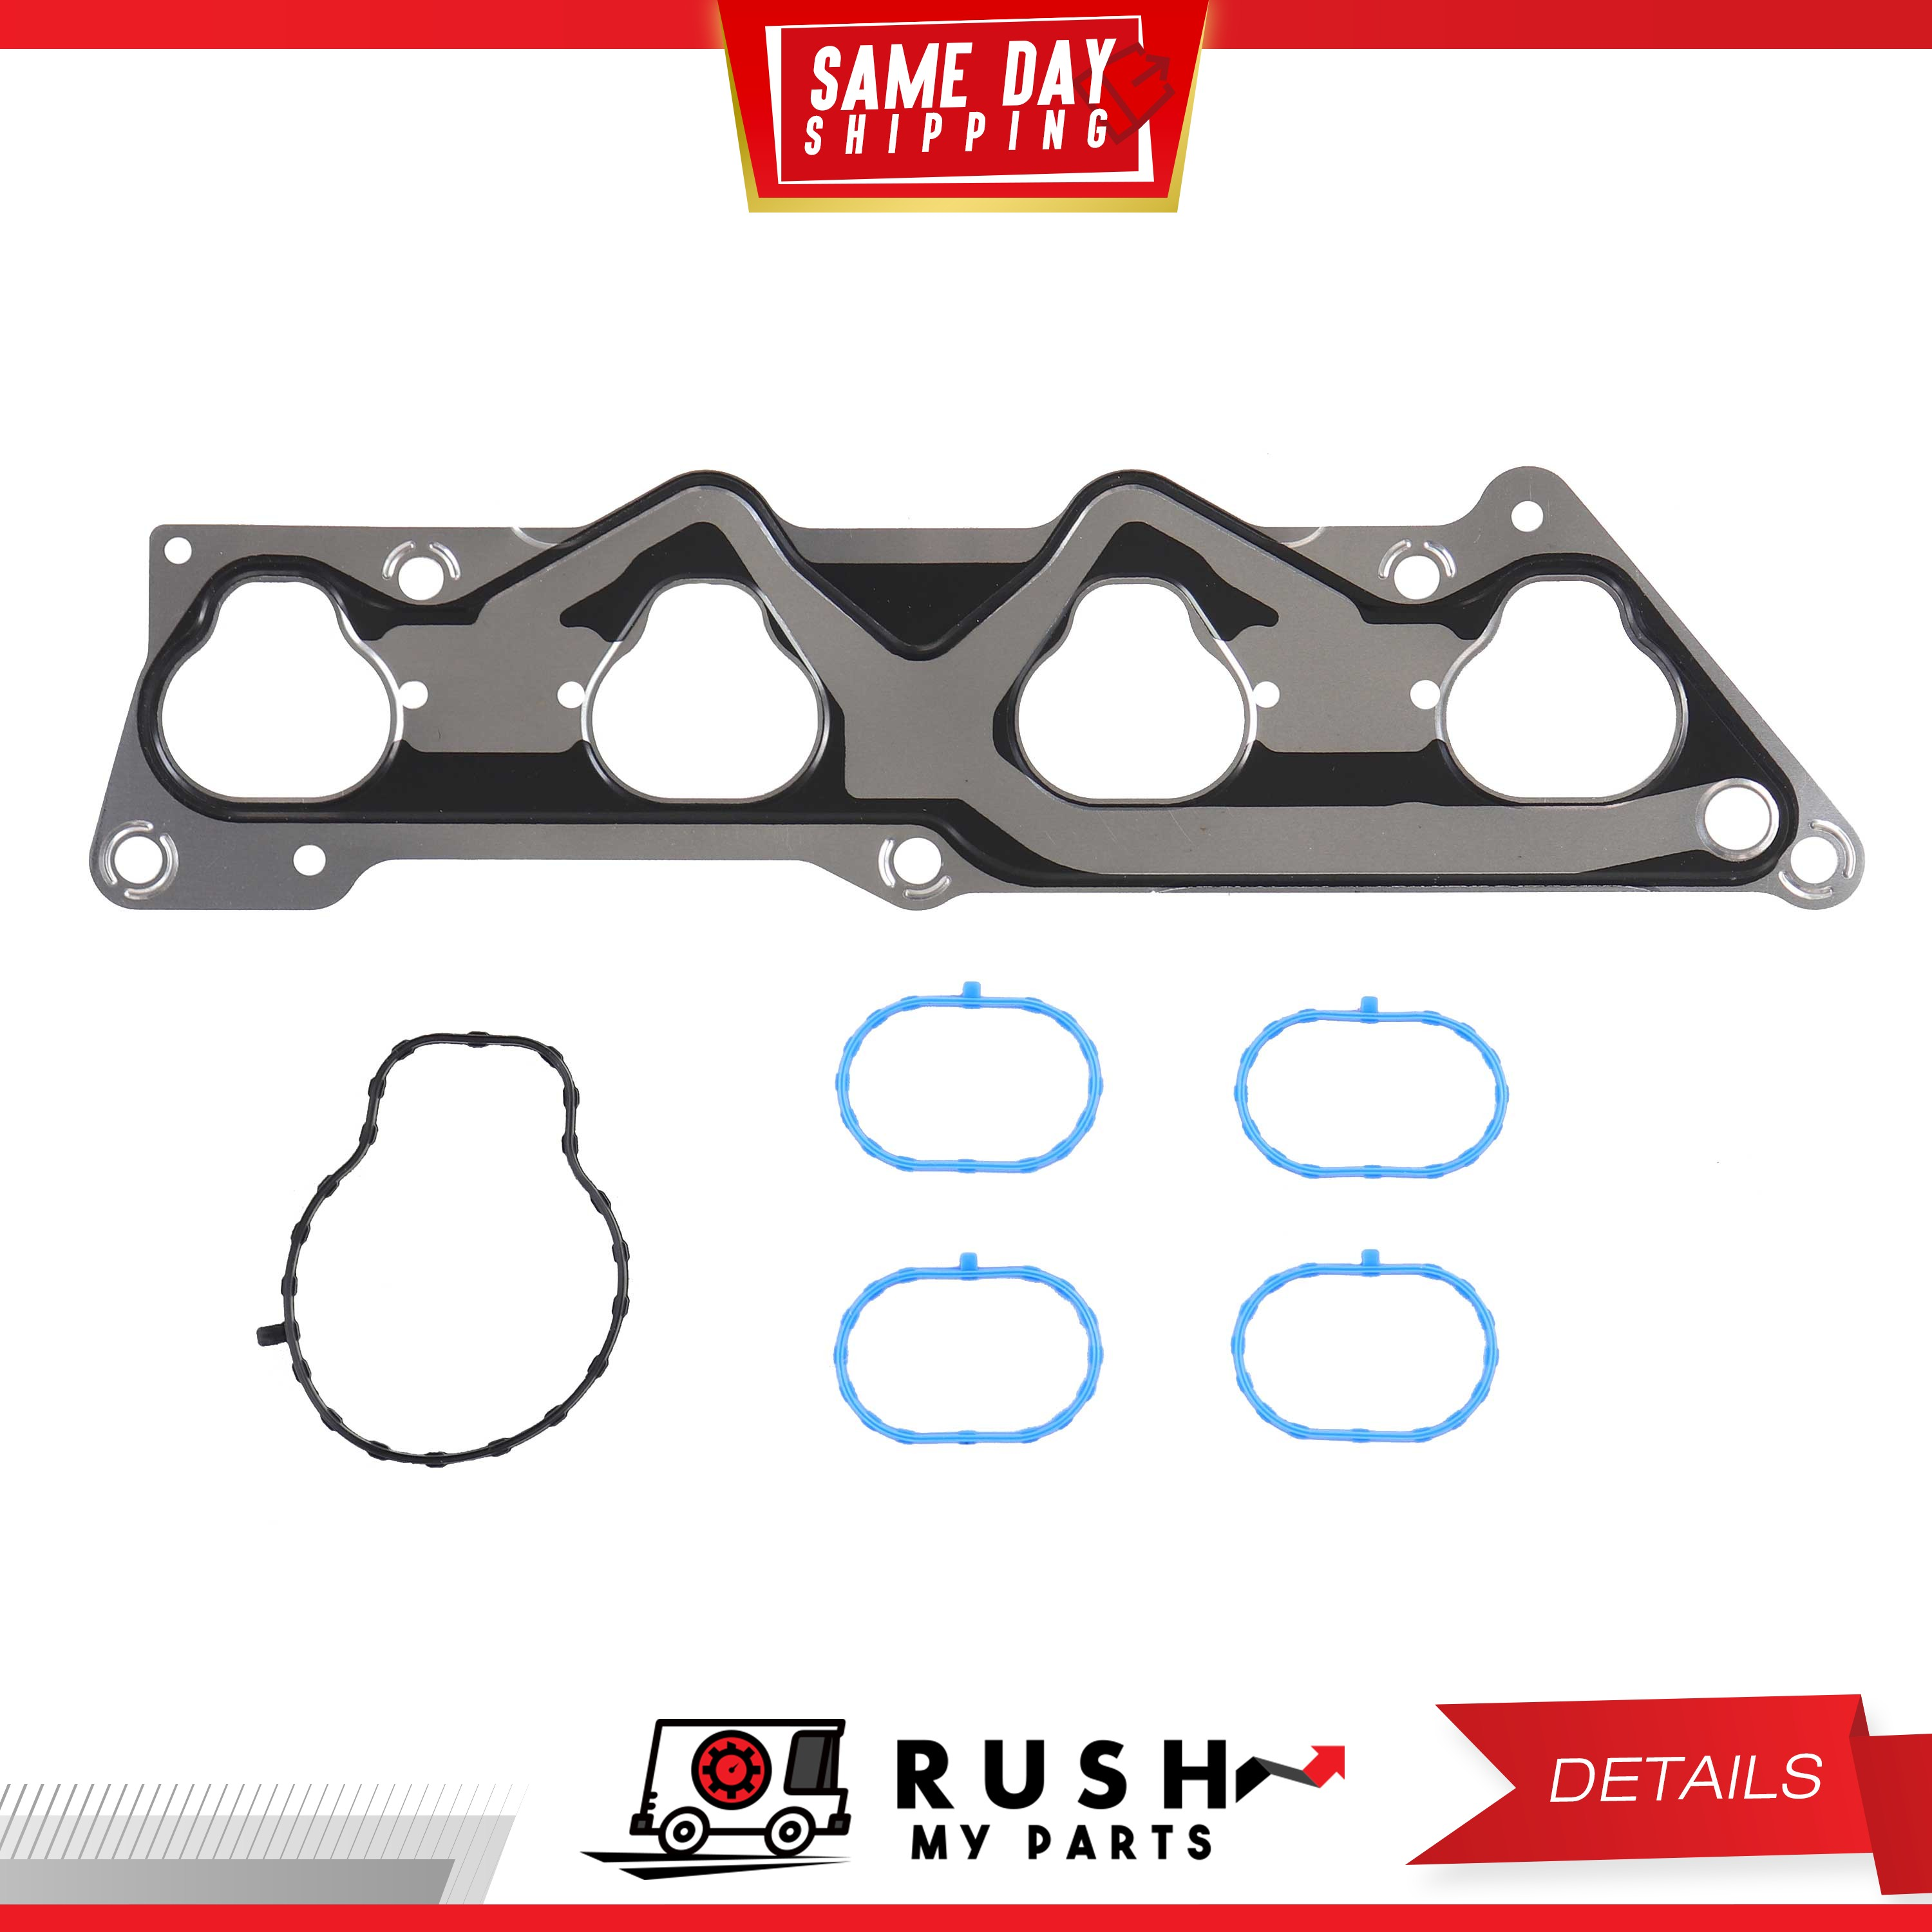 Engine Timing Cover Seal Lower fits 01-05 Honda Civic 1.7L-L4